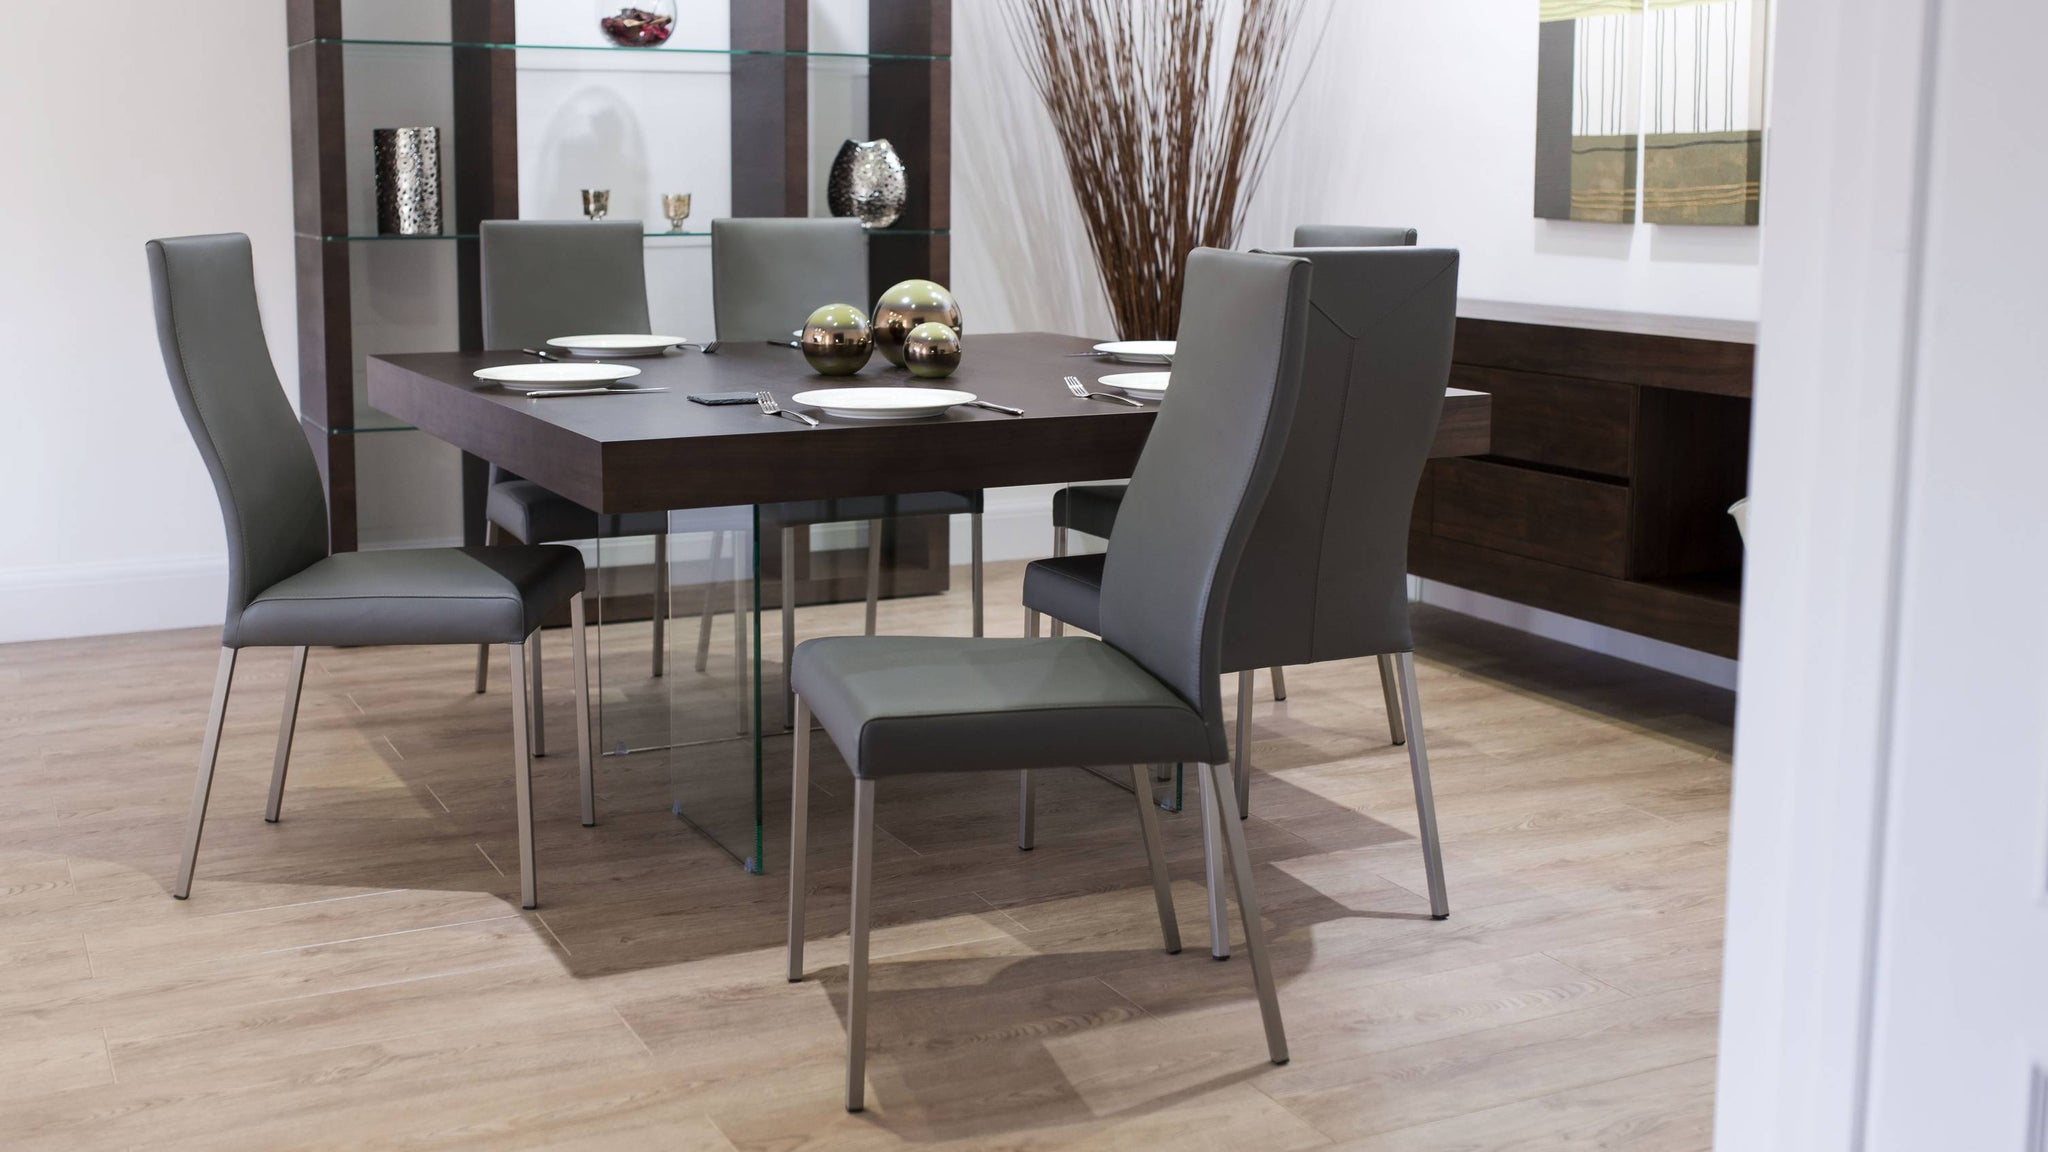 Real Leather Dining Chairs and Dark Wood Dining Table